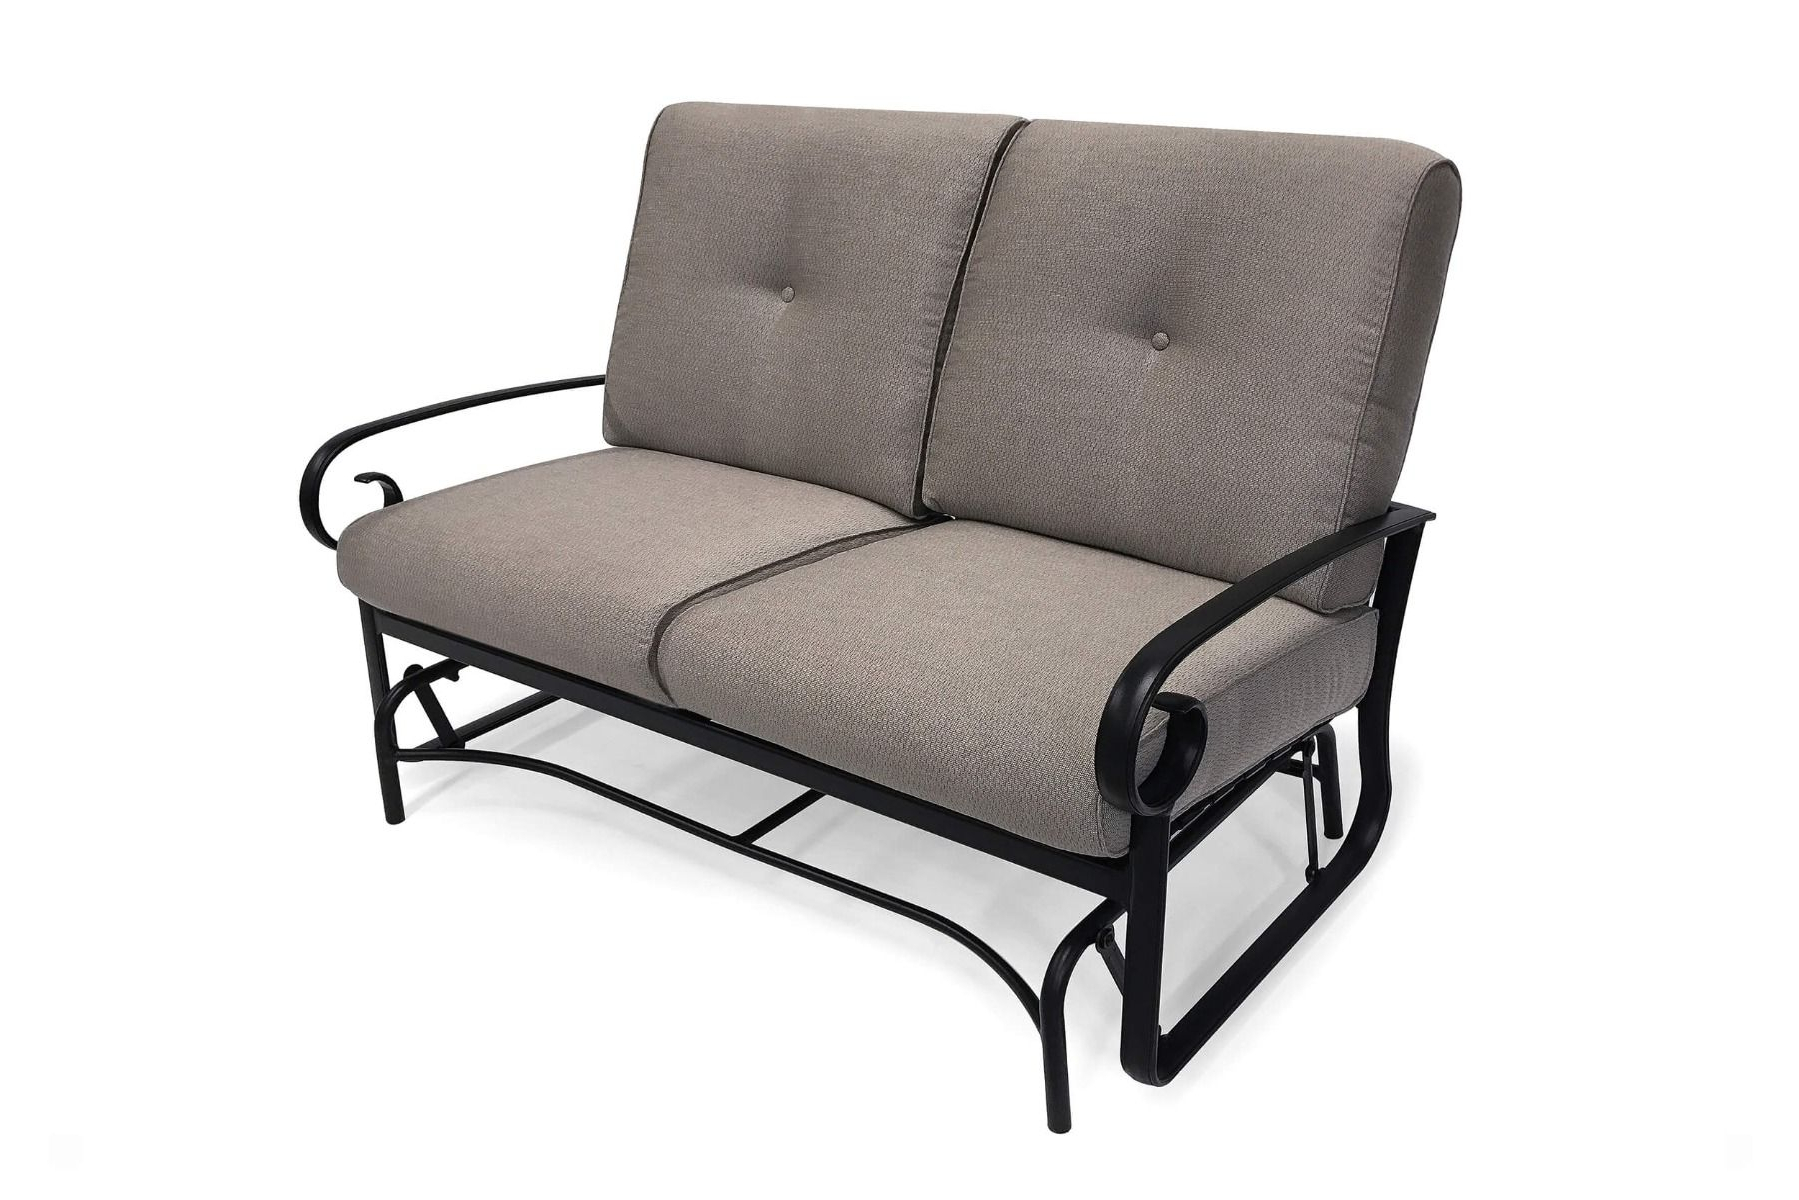 Best And Newest Outdoor Loveseat Gliders With Cushion With Veneto Cushion Loveseat Glider (View 14 of 30)